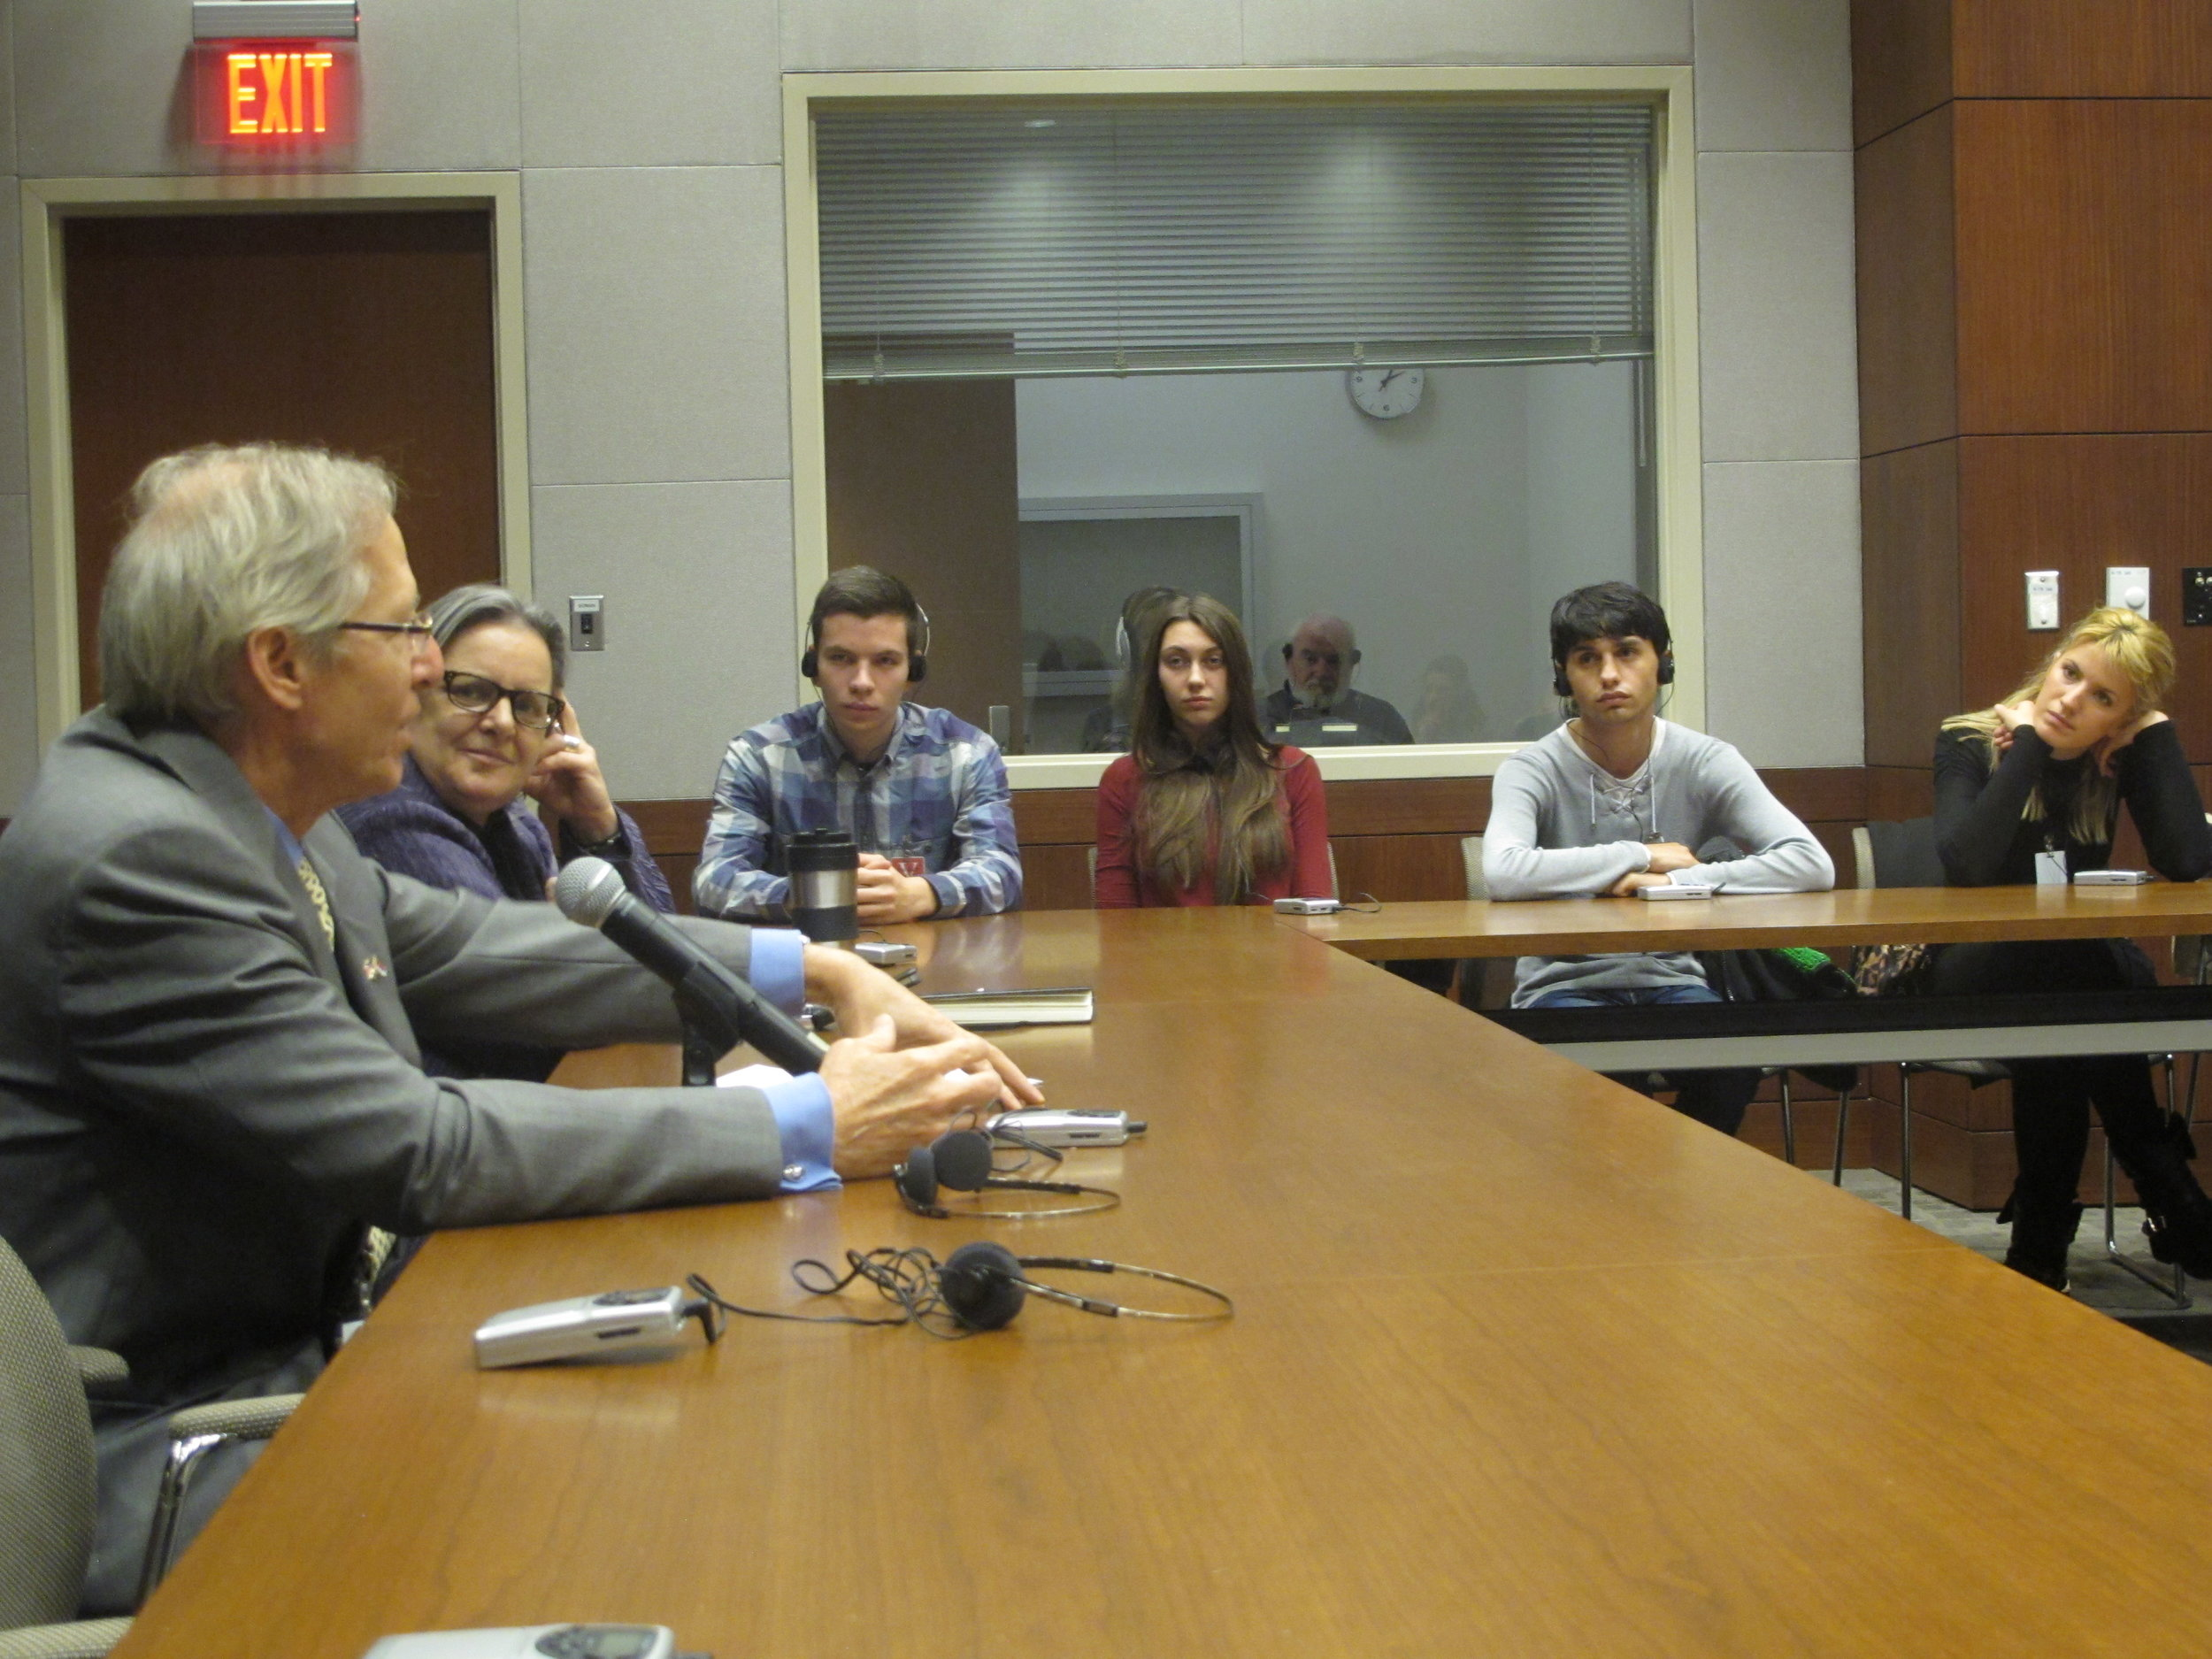 Reclaiming adolescence youth research team meeting US Ambassador in Belgrade. Photo taken with consent: CIP Center